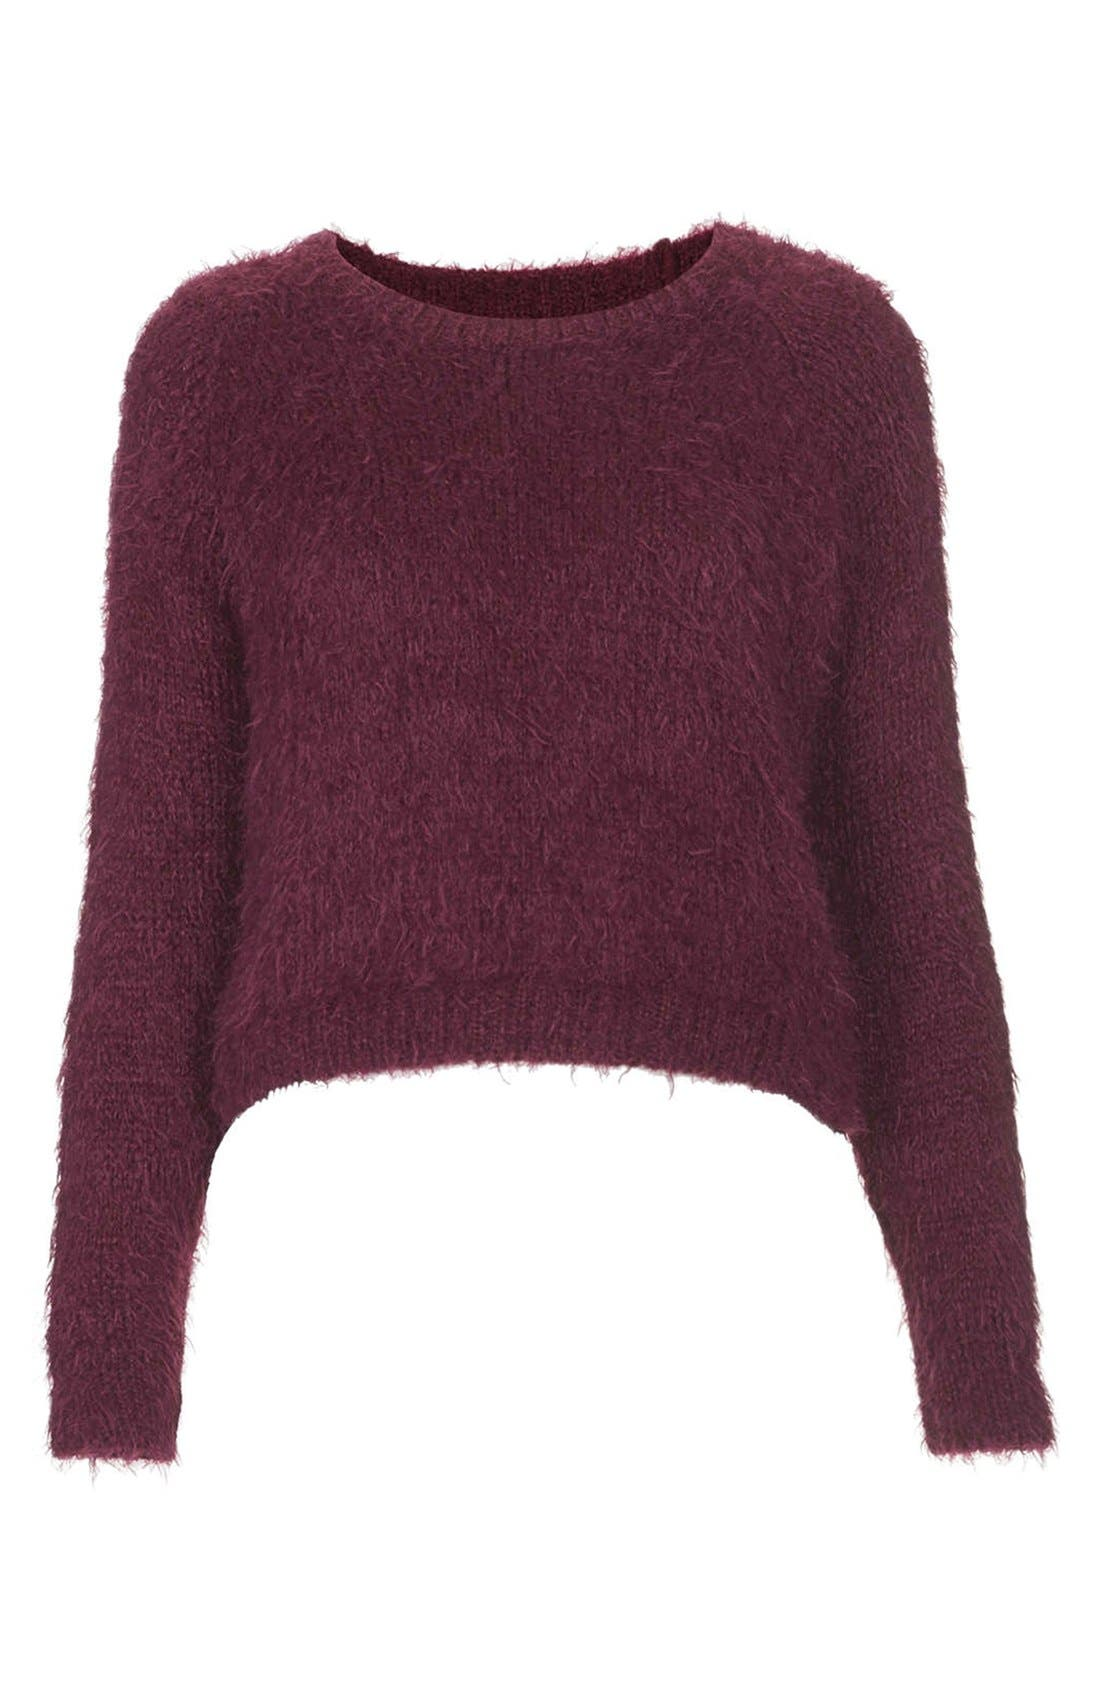 Alternate Image 3  - Topshop 'Monster Rib' Textured Crewneck Crop Sweater